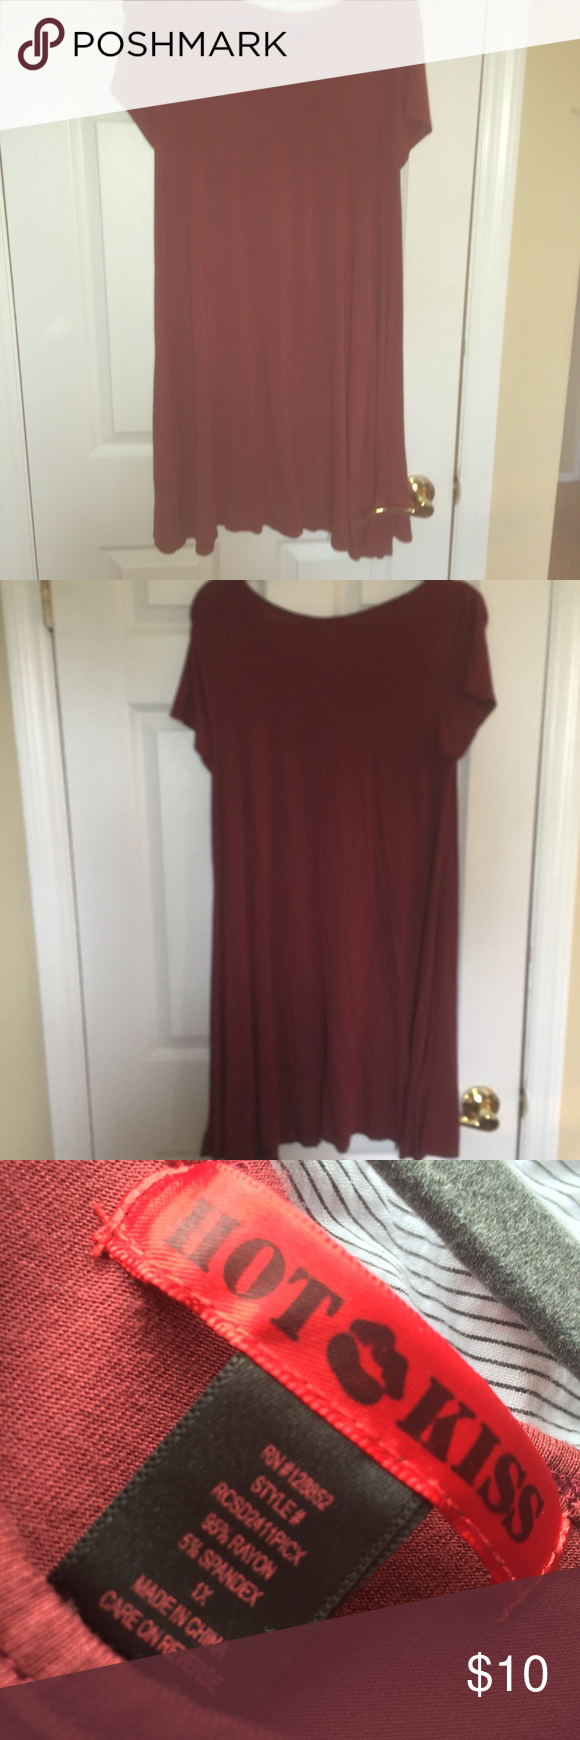 """T-shirt dress Dark red. Hot Kiss brand loose fitting. 36"""" from shoulder to hem. Never worn but has been washed. Hot Kiss Dresses Midi"""